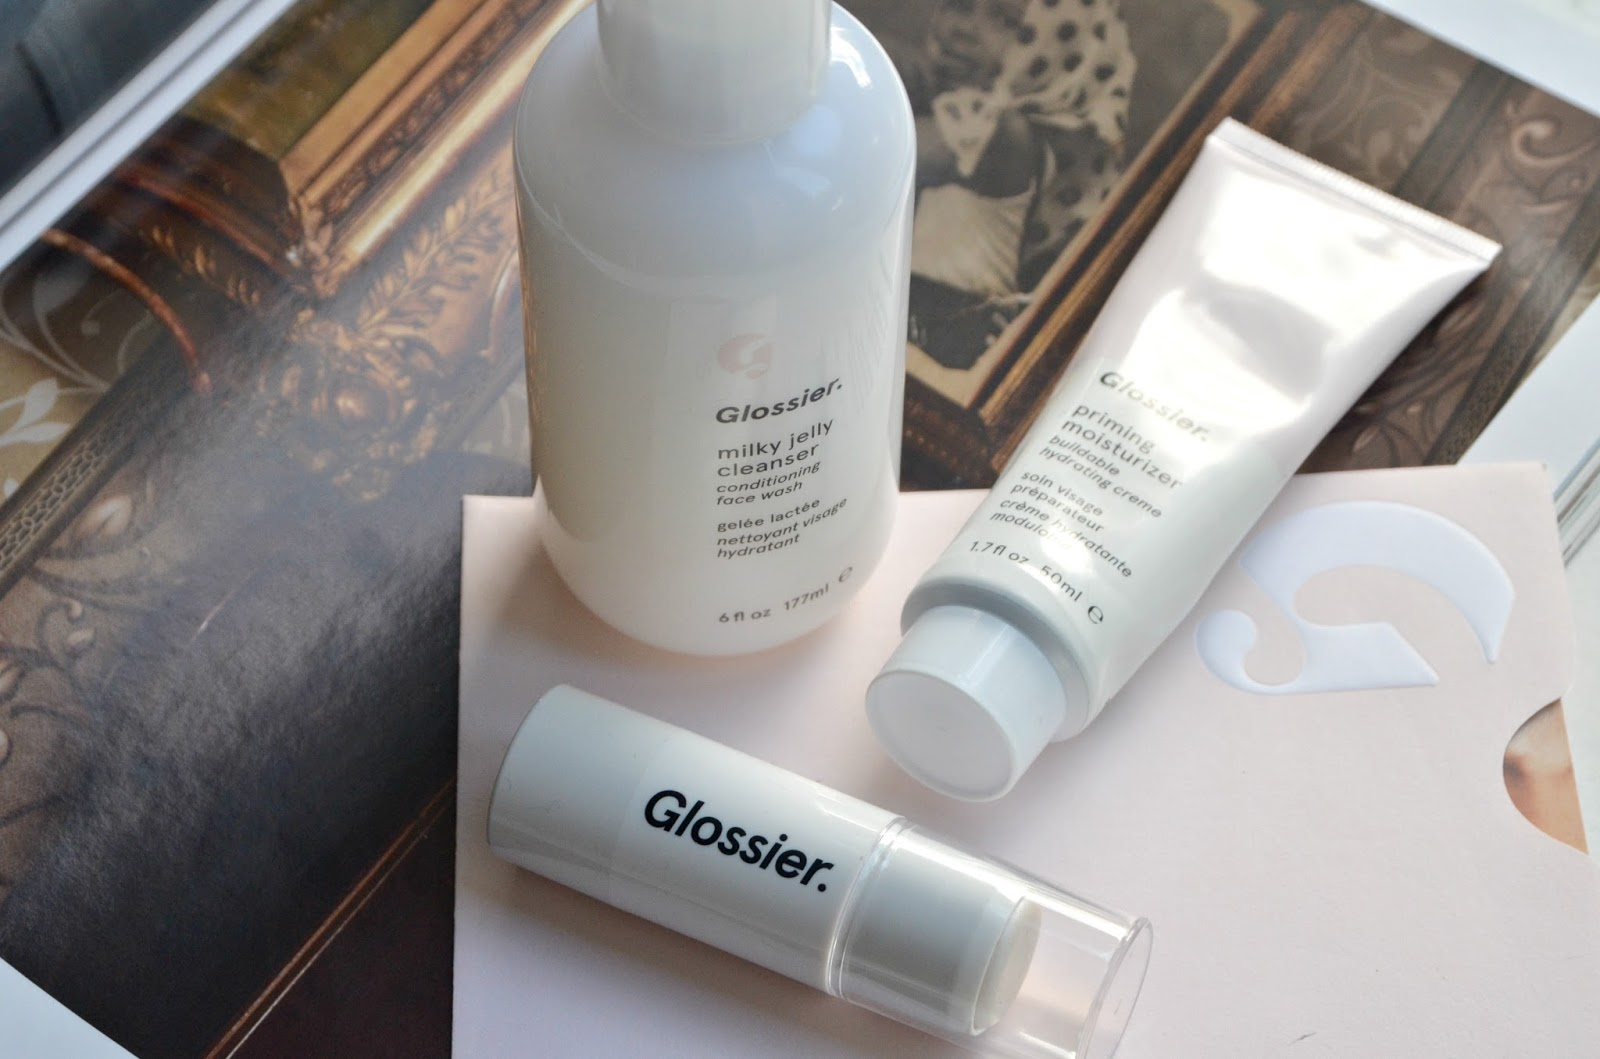 When will Glossier be available in the UK